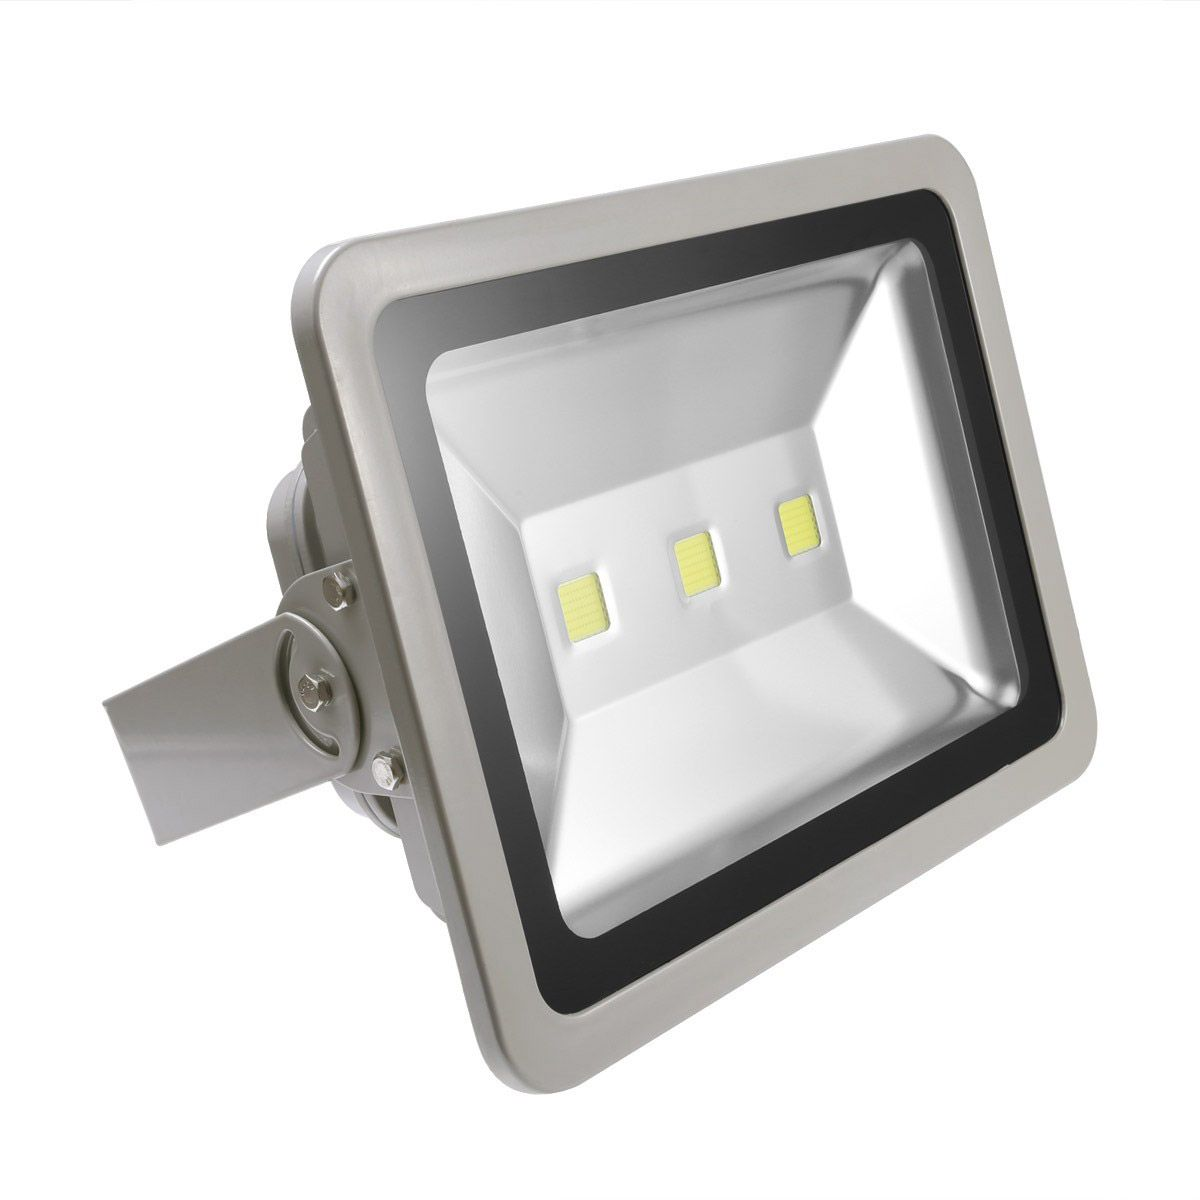 Outdoor Led Light Stunning Choose From A Huge Range Of Highquality #durable And Powerful Review